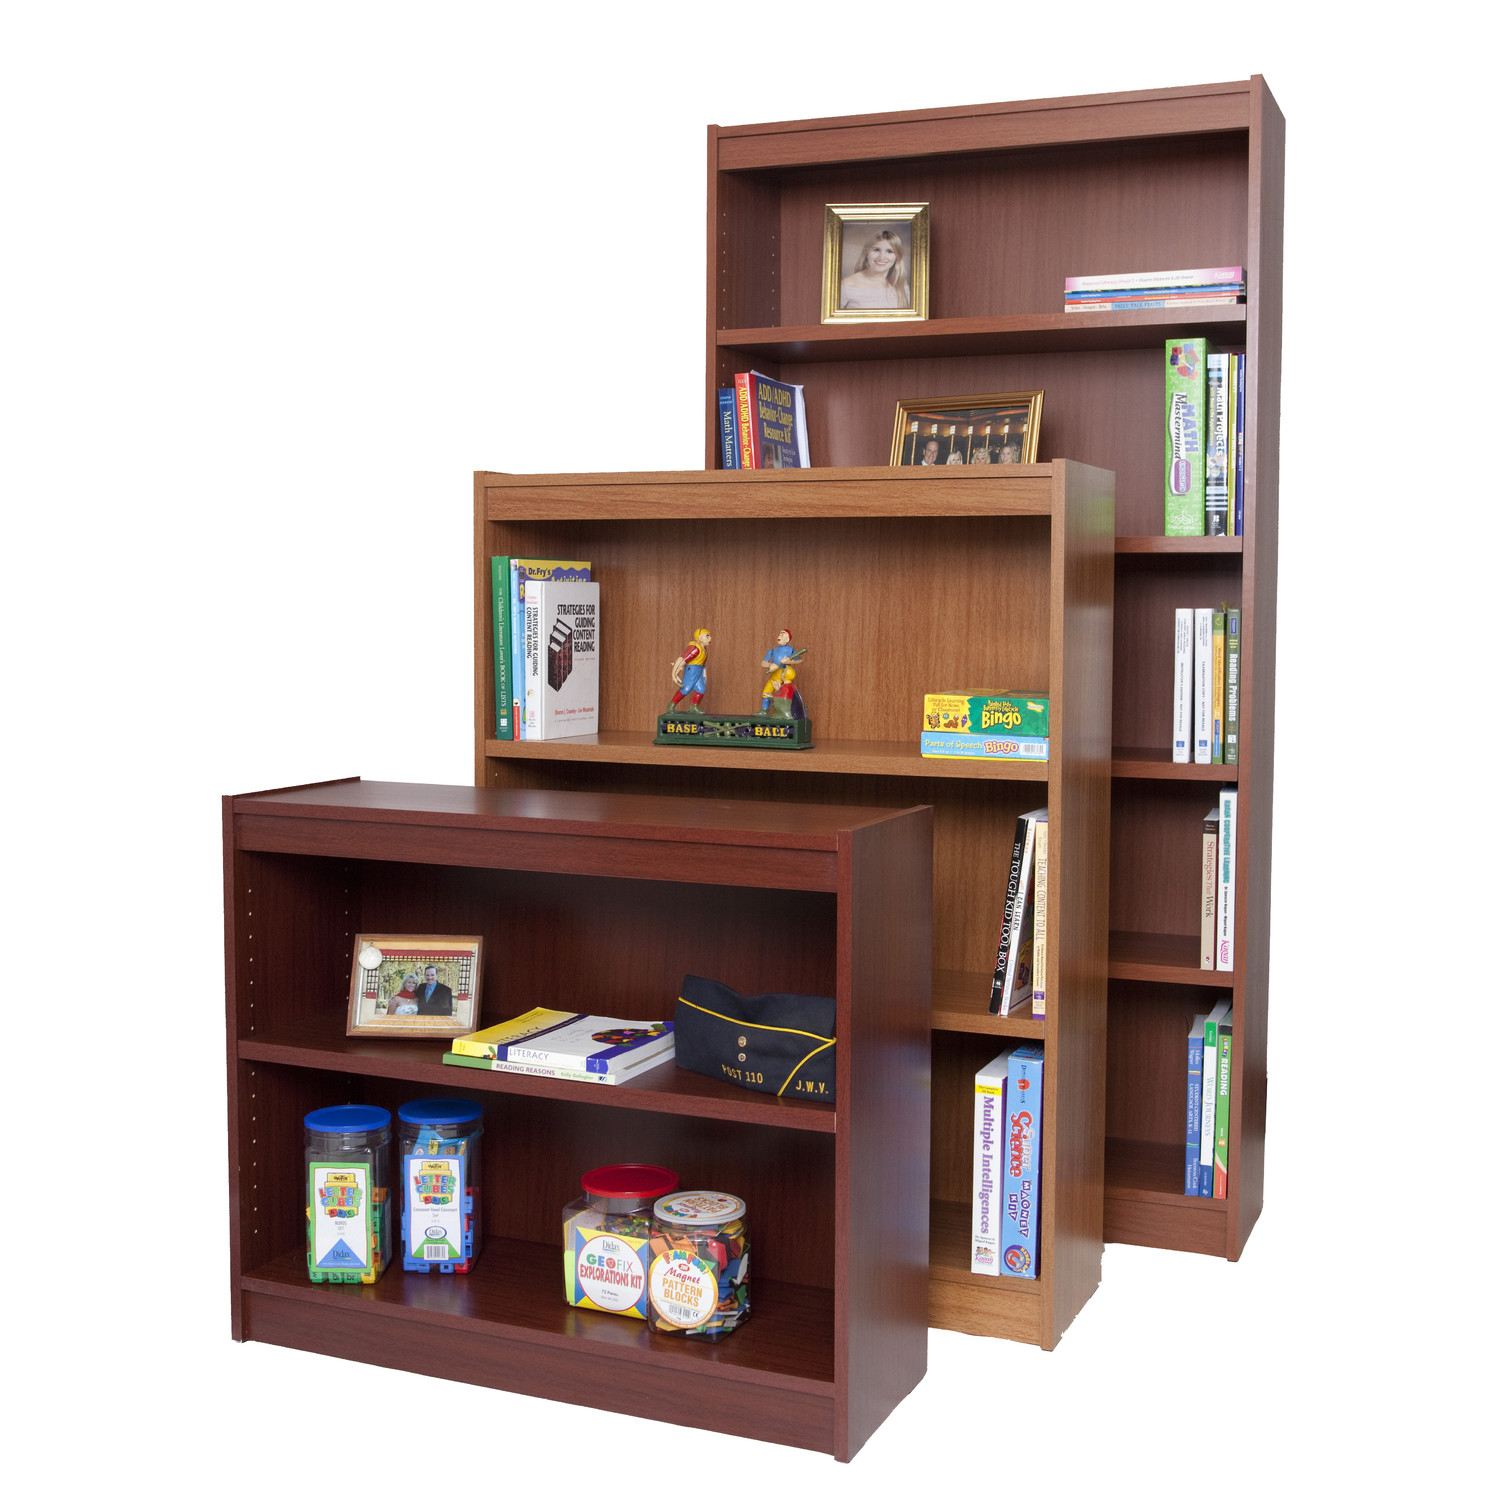 Room Essentials Bookcase